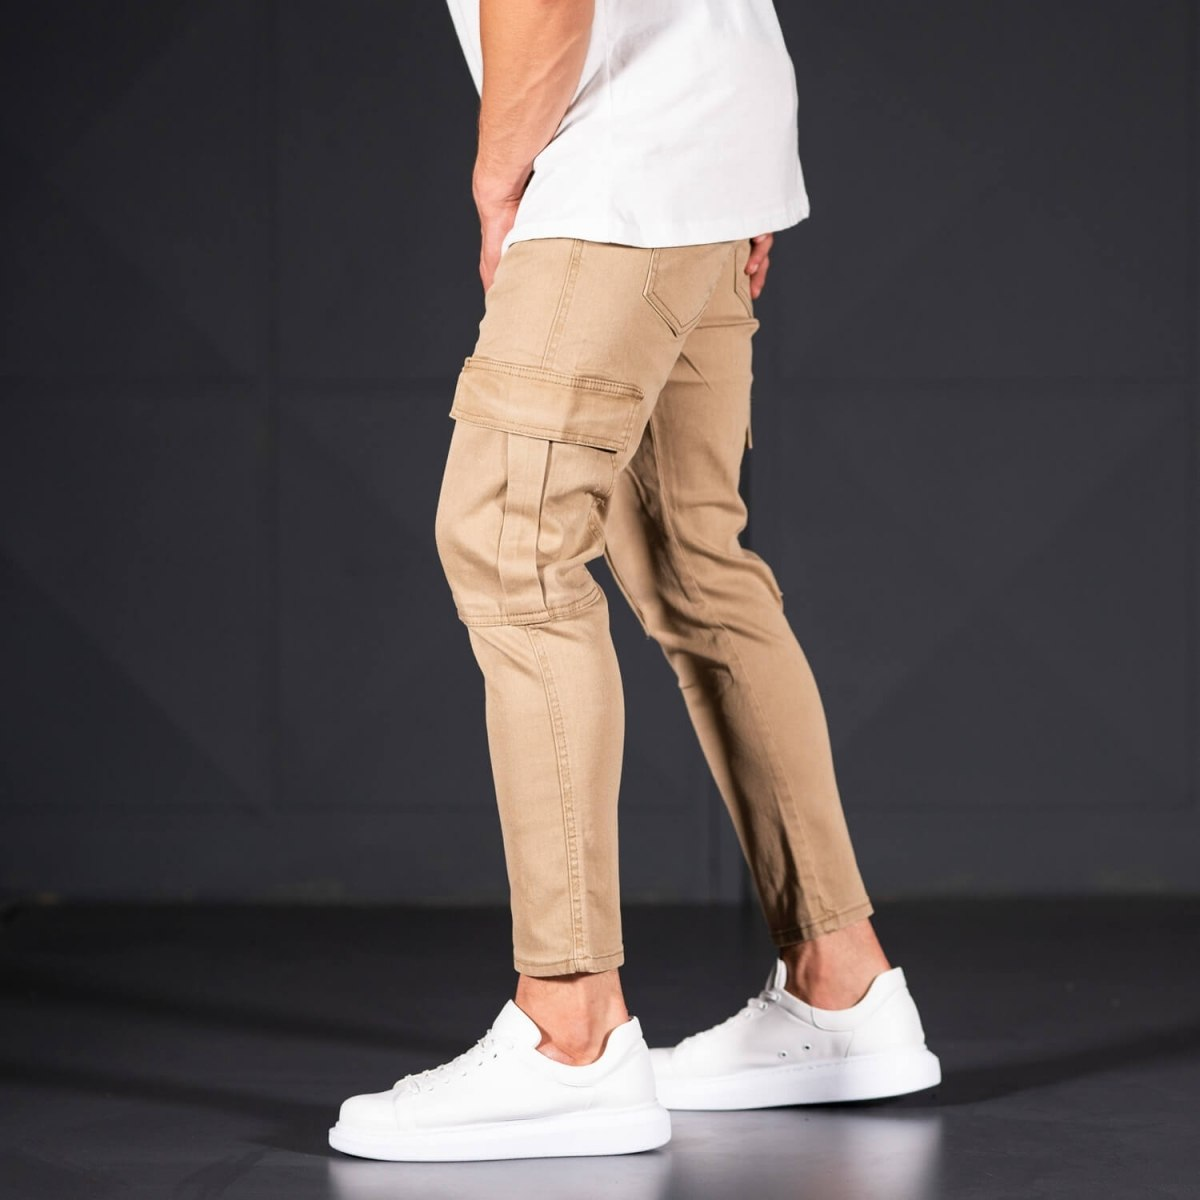 Men's Jeans with Pockets Style in Camel Mv Premium Brand - 3